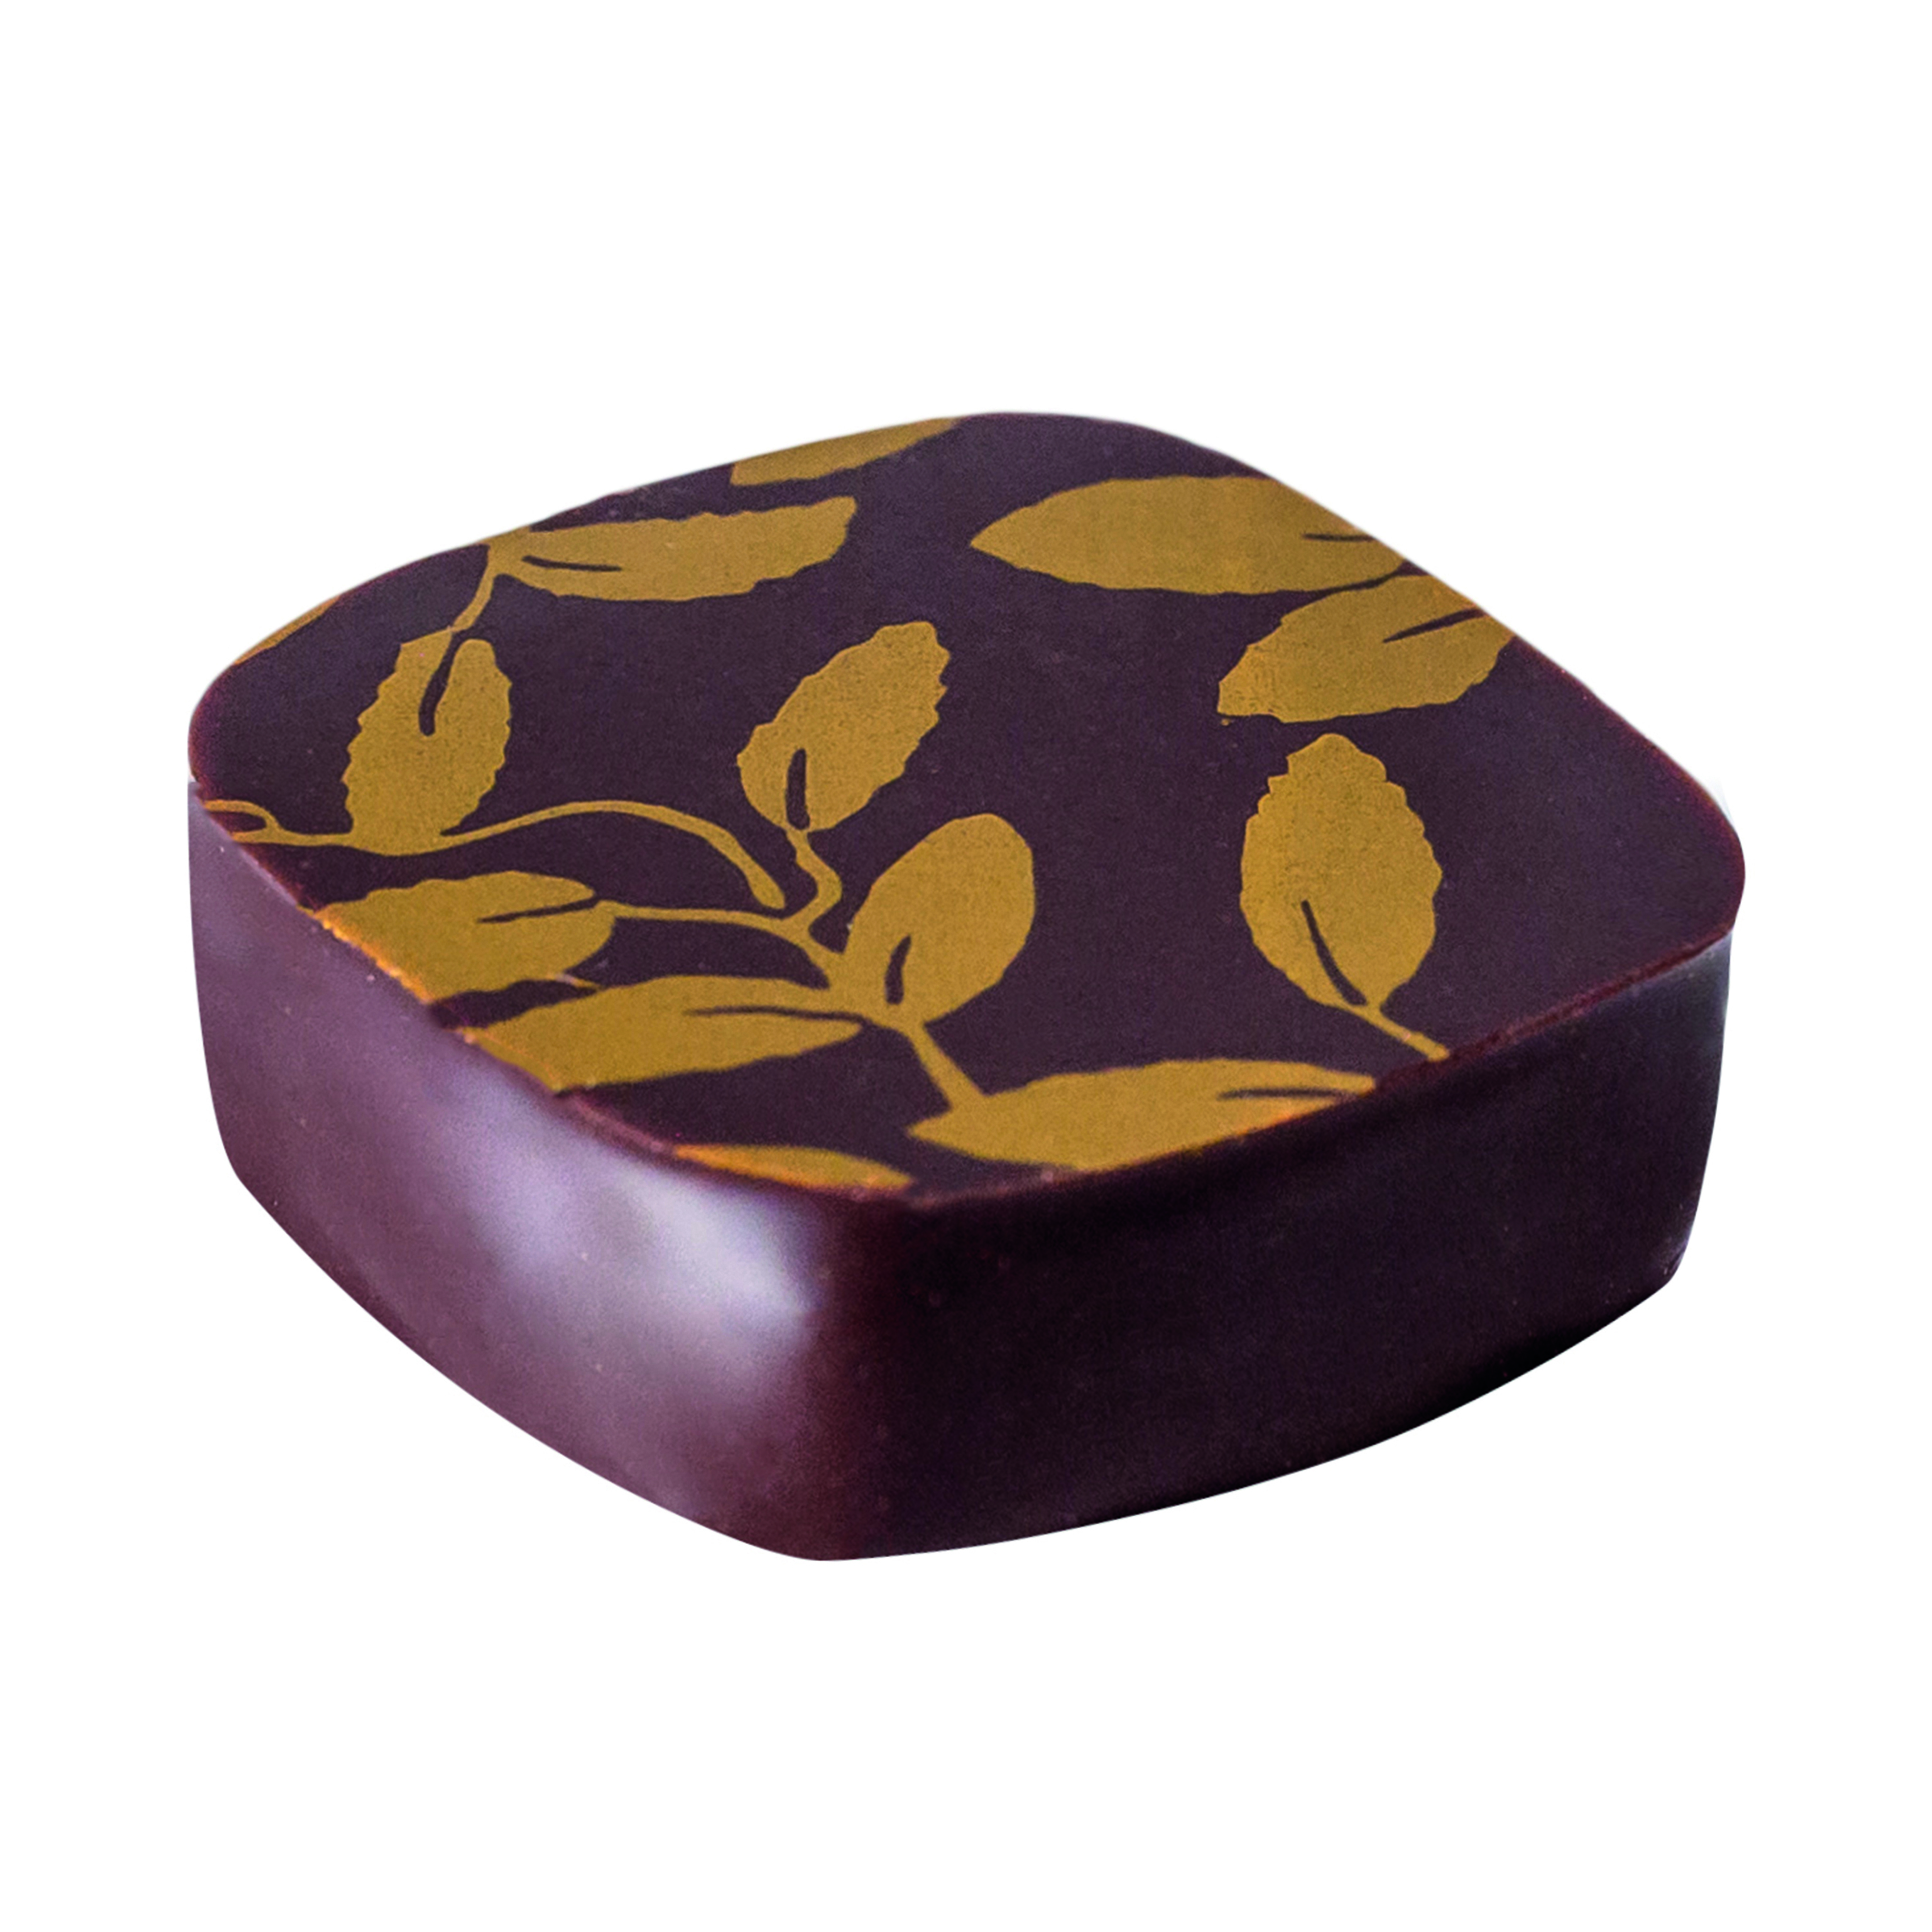 SENSATION GANACHE THE JASMIN